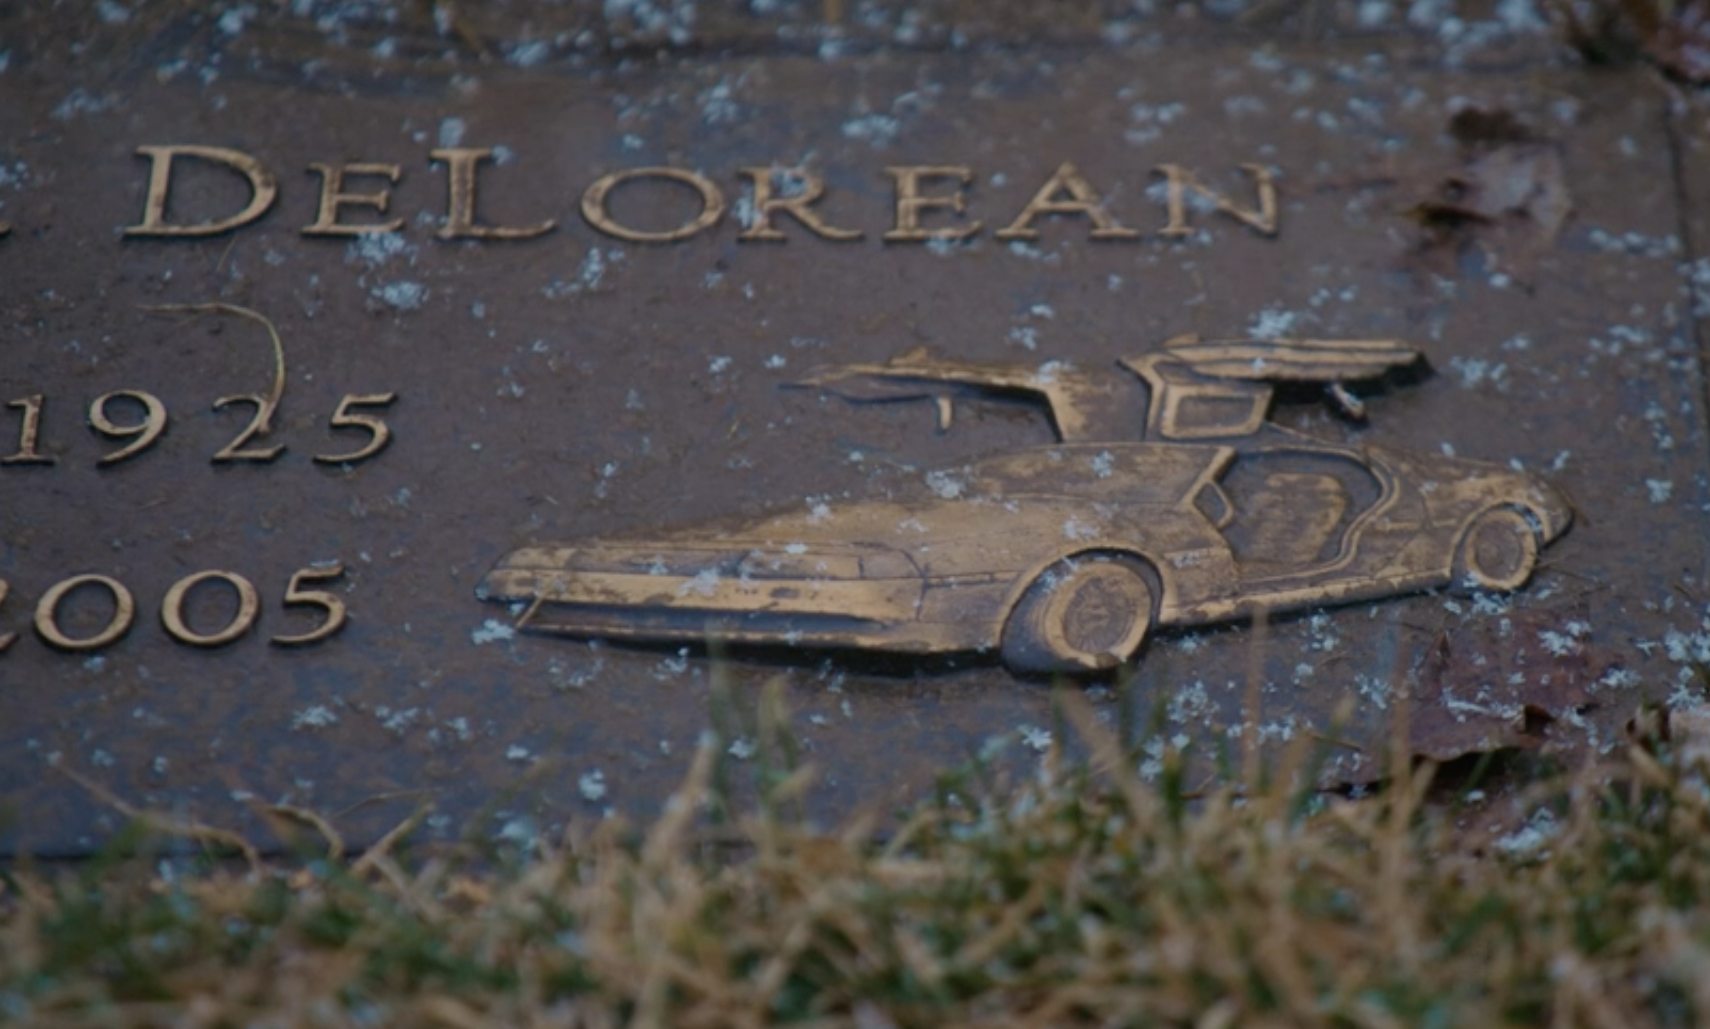 Screen Shot 2021 08 10 at 14.23.47 e1628601897730 DeLorean: The Strange Story Behind The Iconic 80s Sports Car And Its Creator